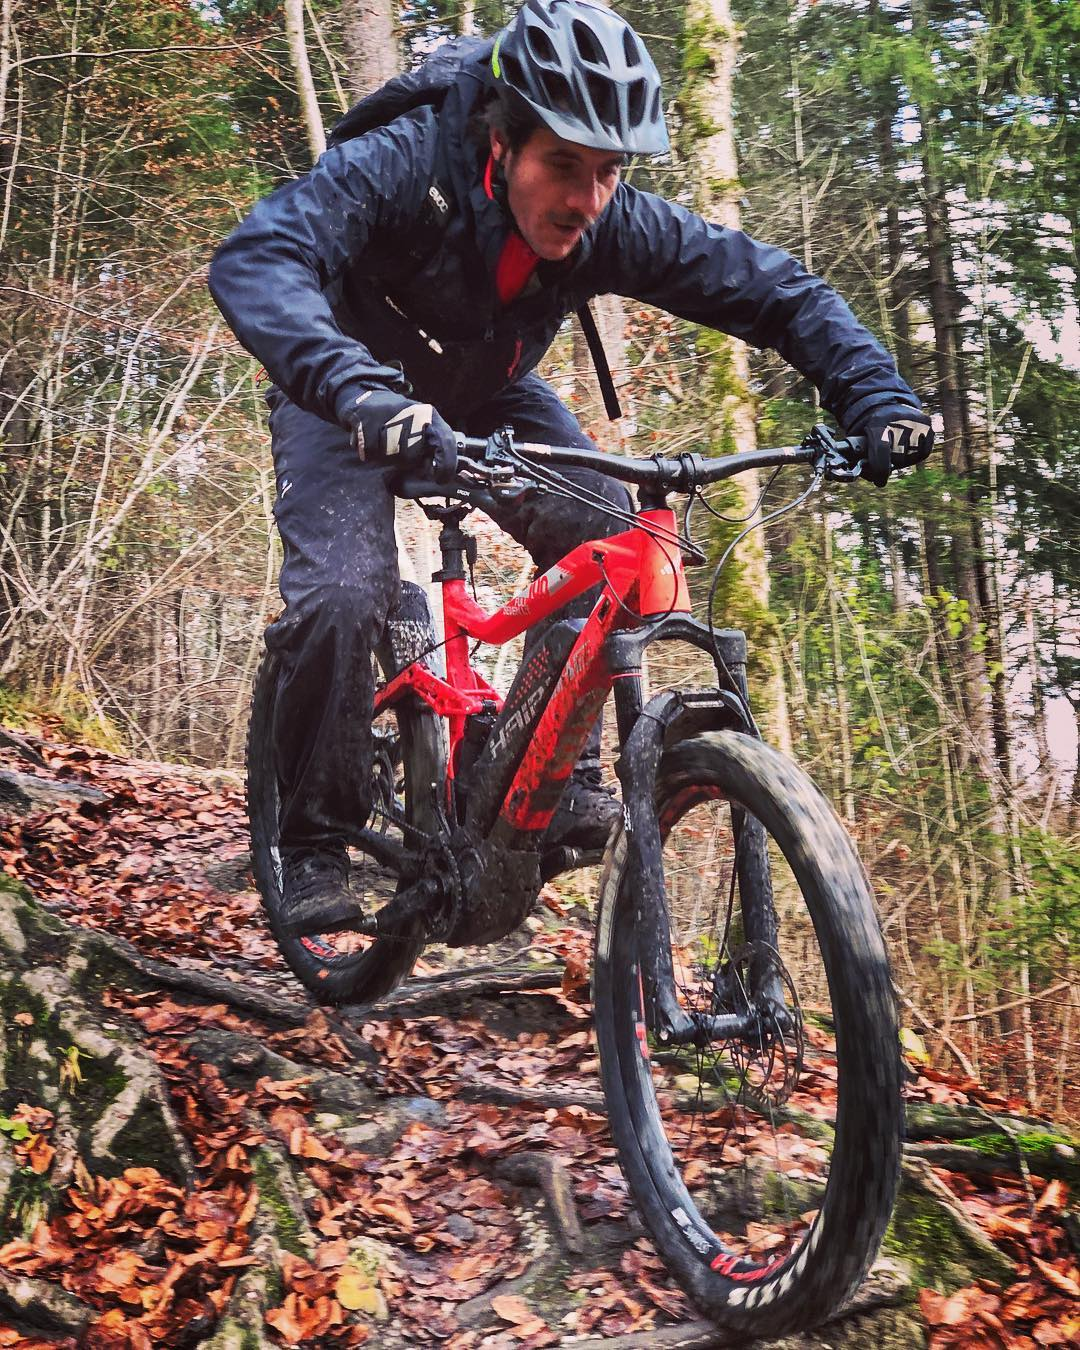 Muddy Monday in Movember #haibike #emtb #ebike #emountainbike #movember #designagency #agencylife